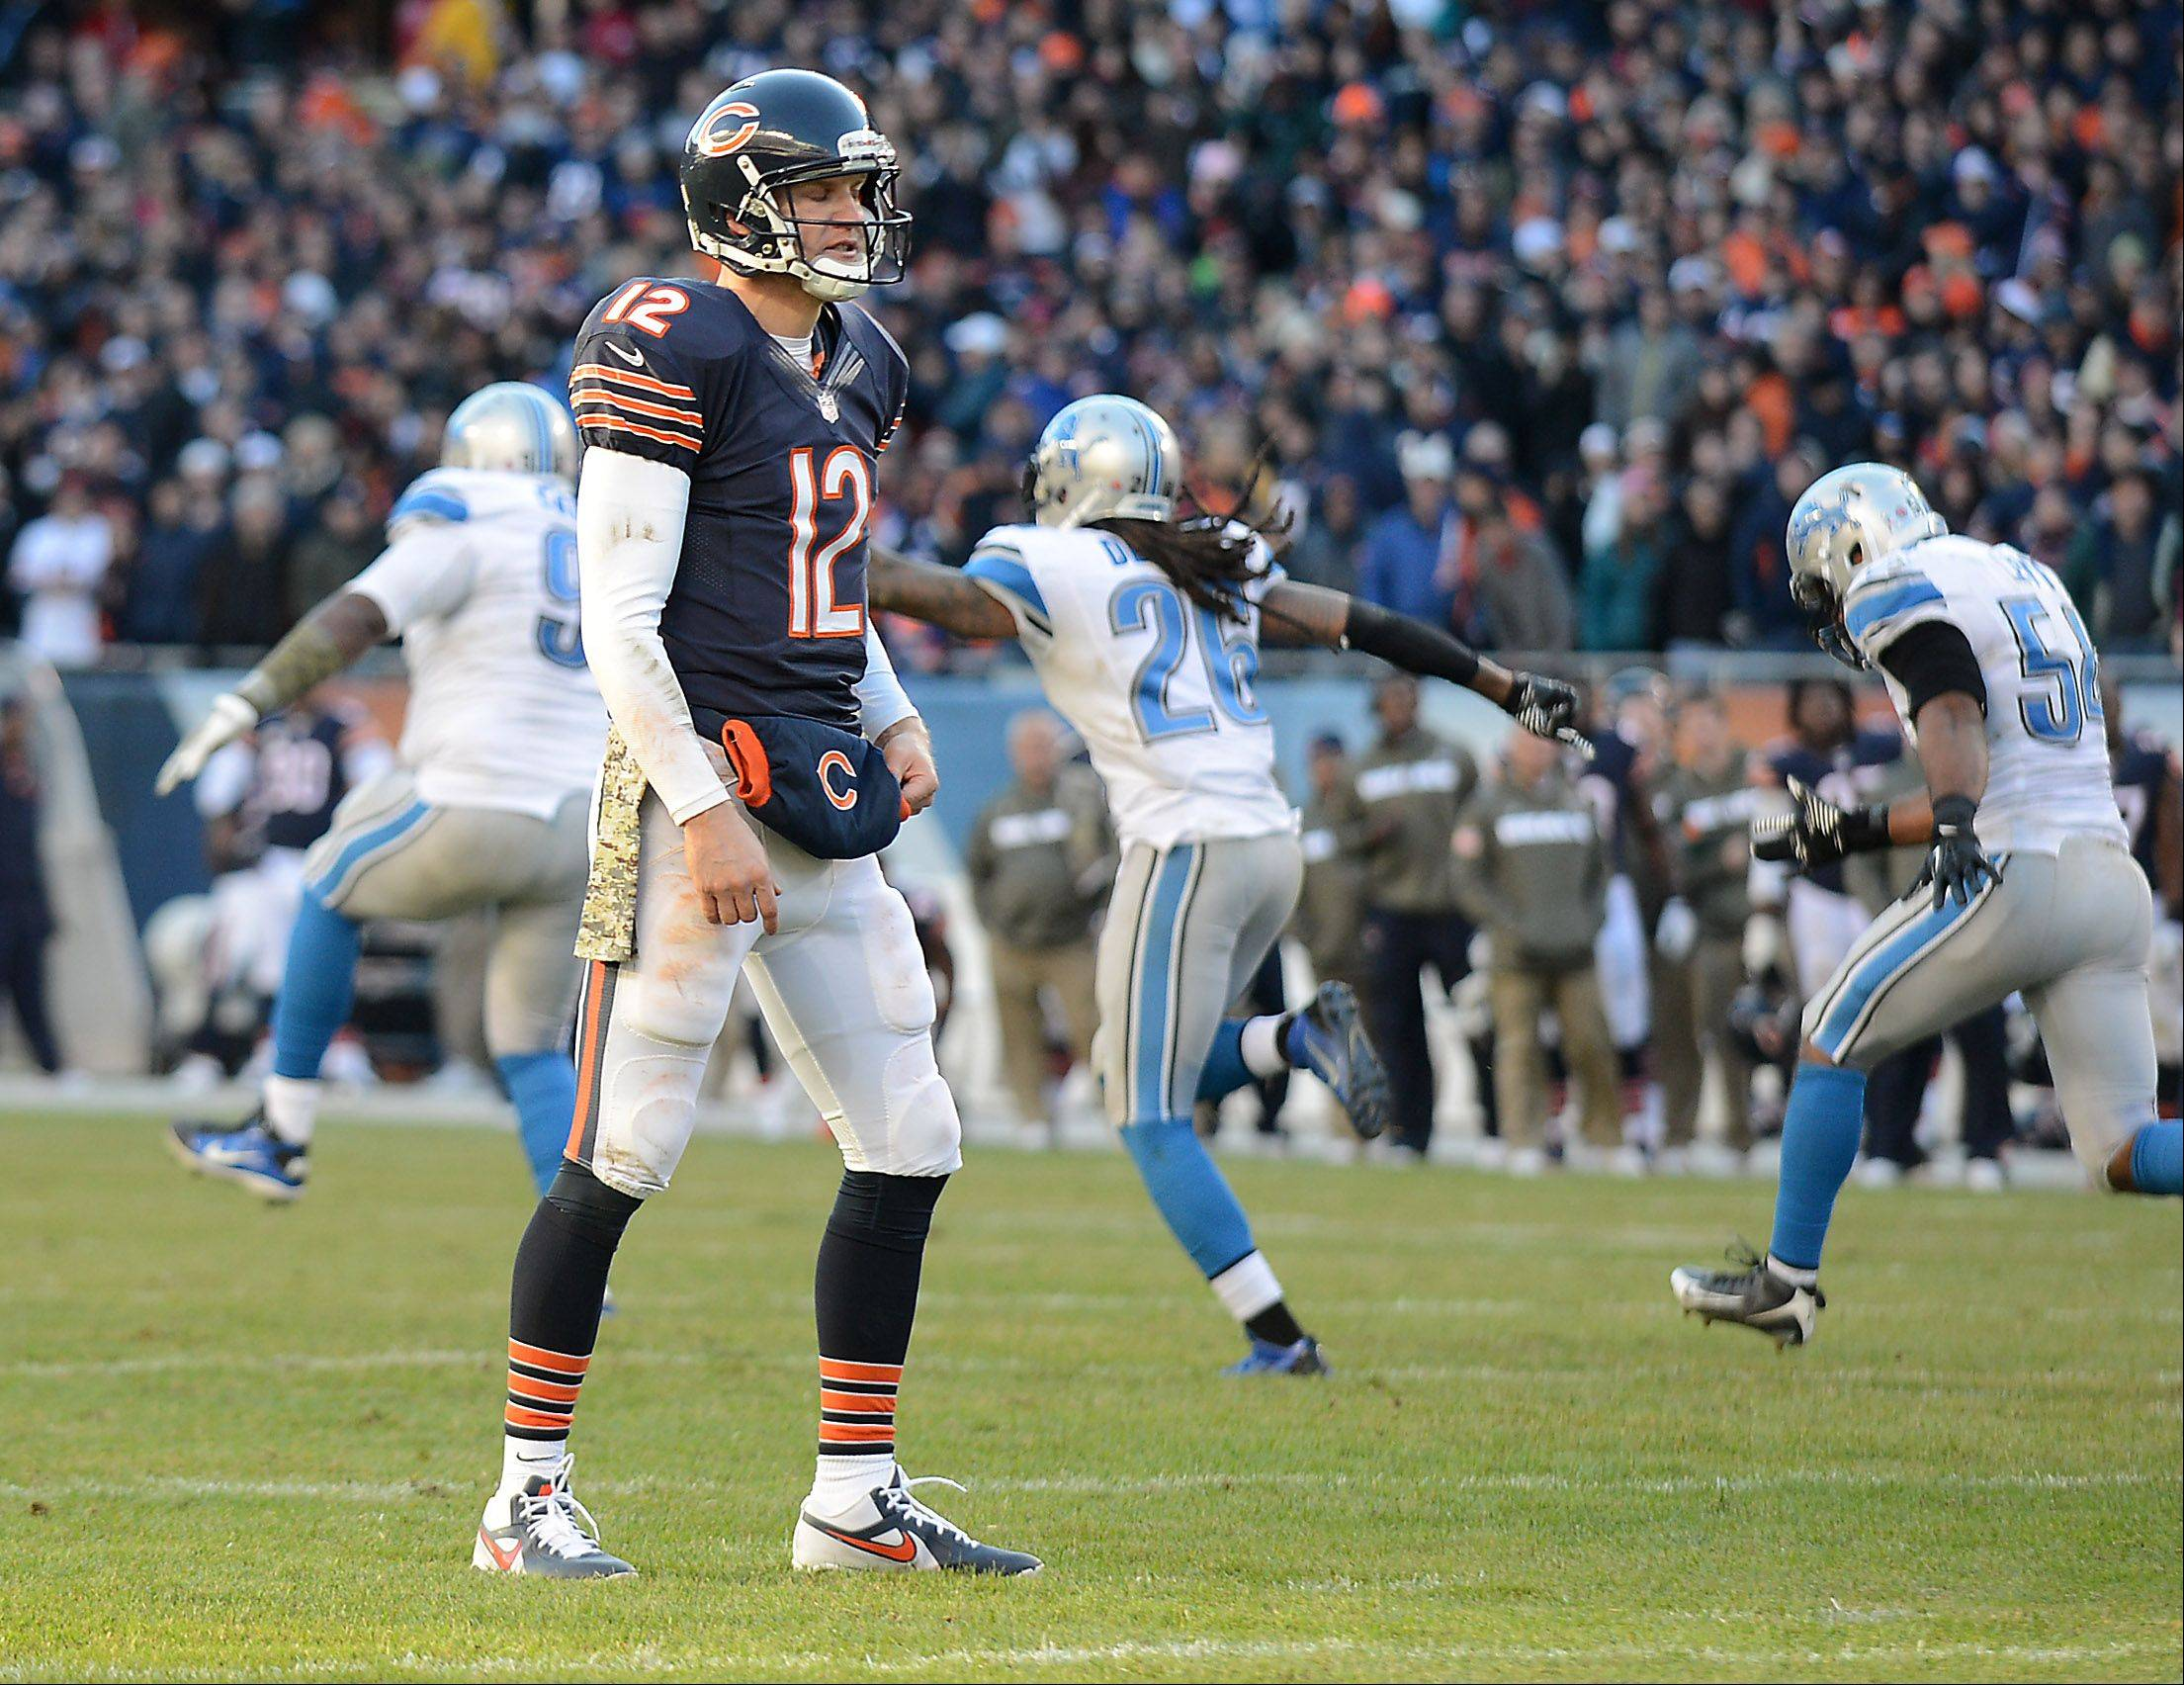 Chicago Bears quarterback Josh McCown (12) and the Detroit Lions defense react after the Bears failed on a two-point conversion attempt in the final minute during Sunday's game in Chicago.